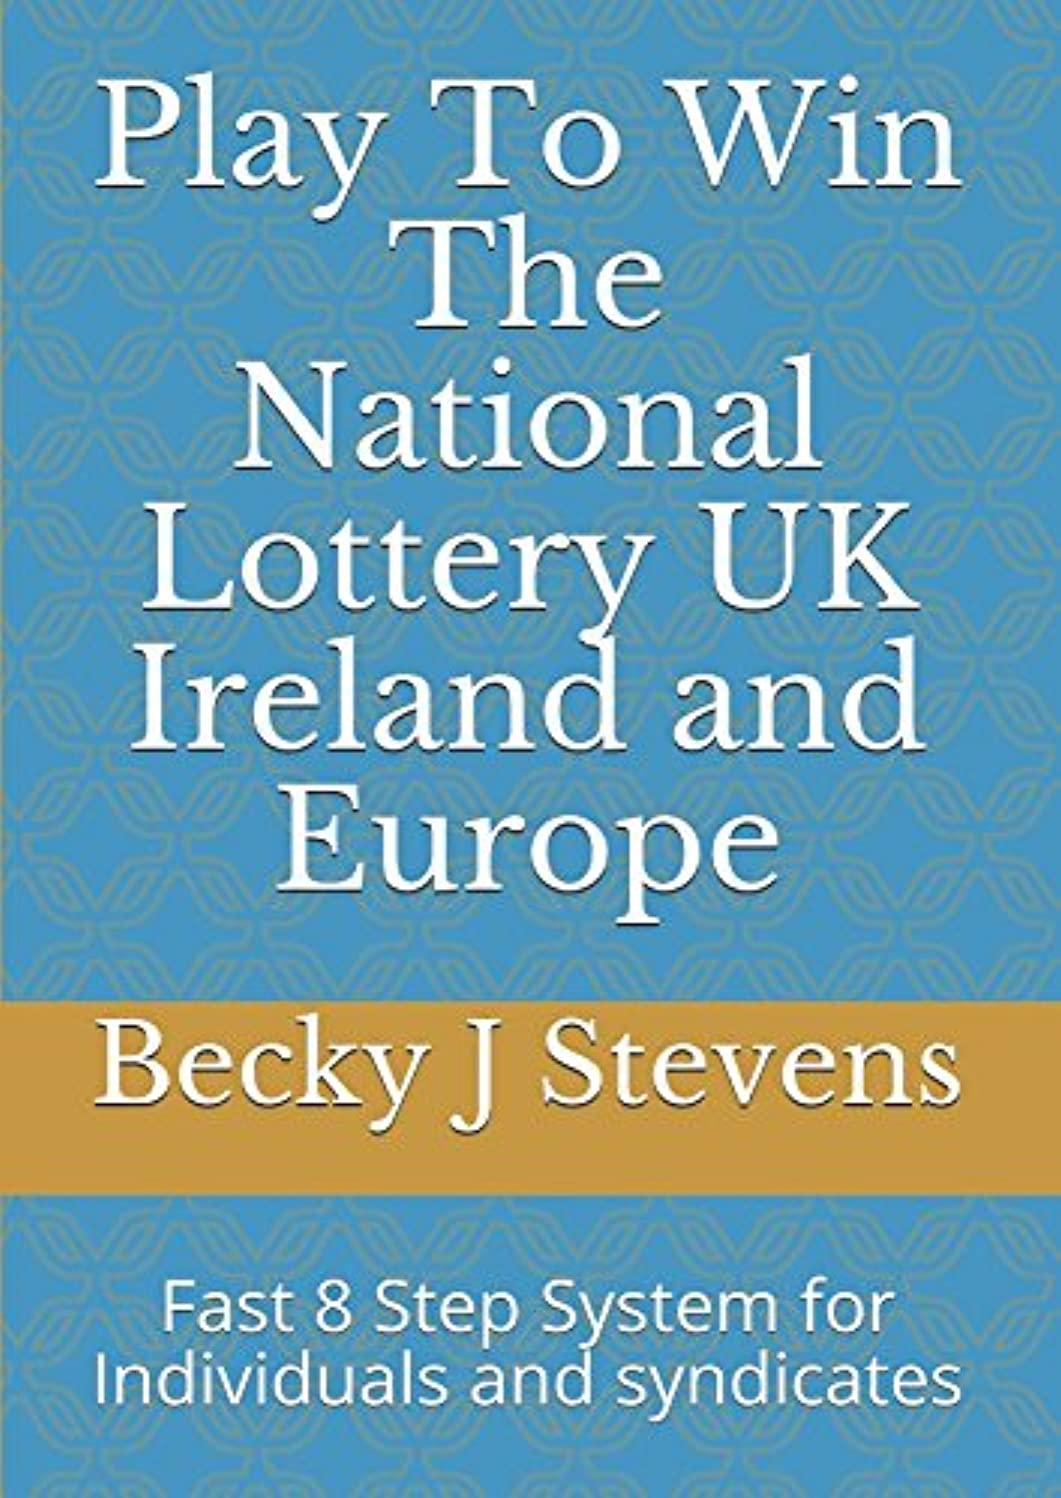 Play To Win The National Lottery UK Ireland and Europe: Fast 8 Step System for Individuals and syndicates